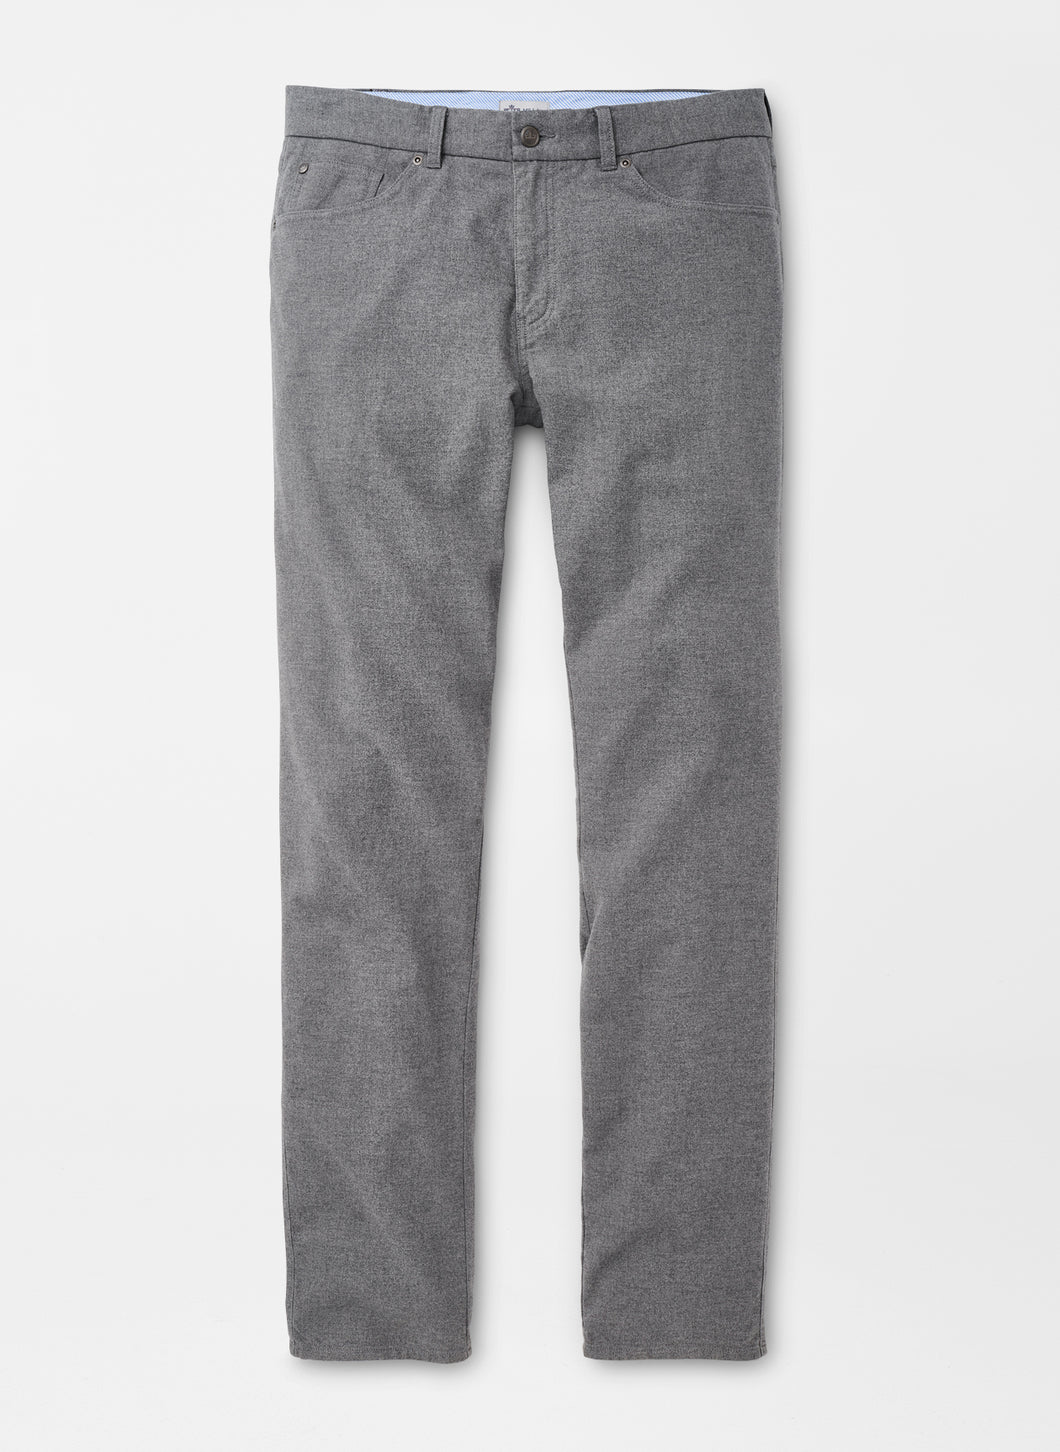 Peter Millar Flannel Five-Pocket Pant in British Grey